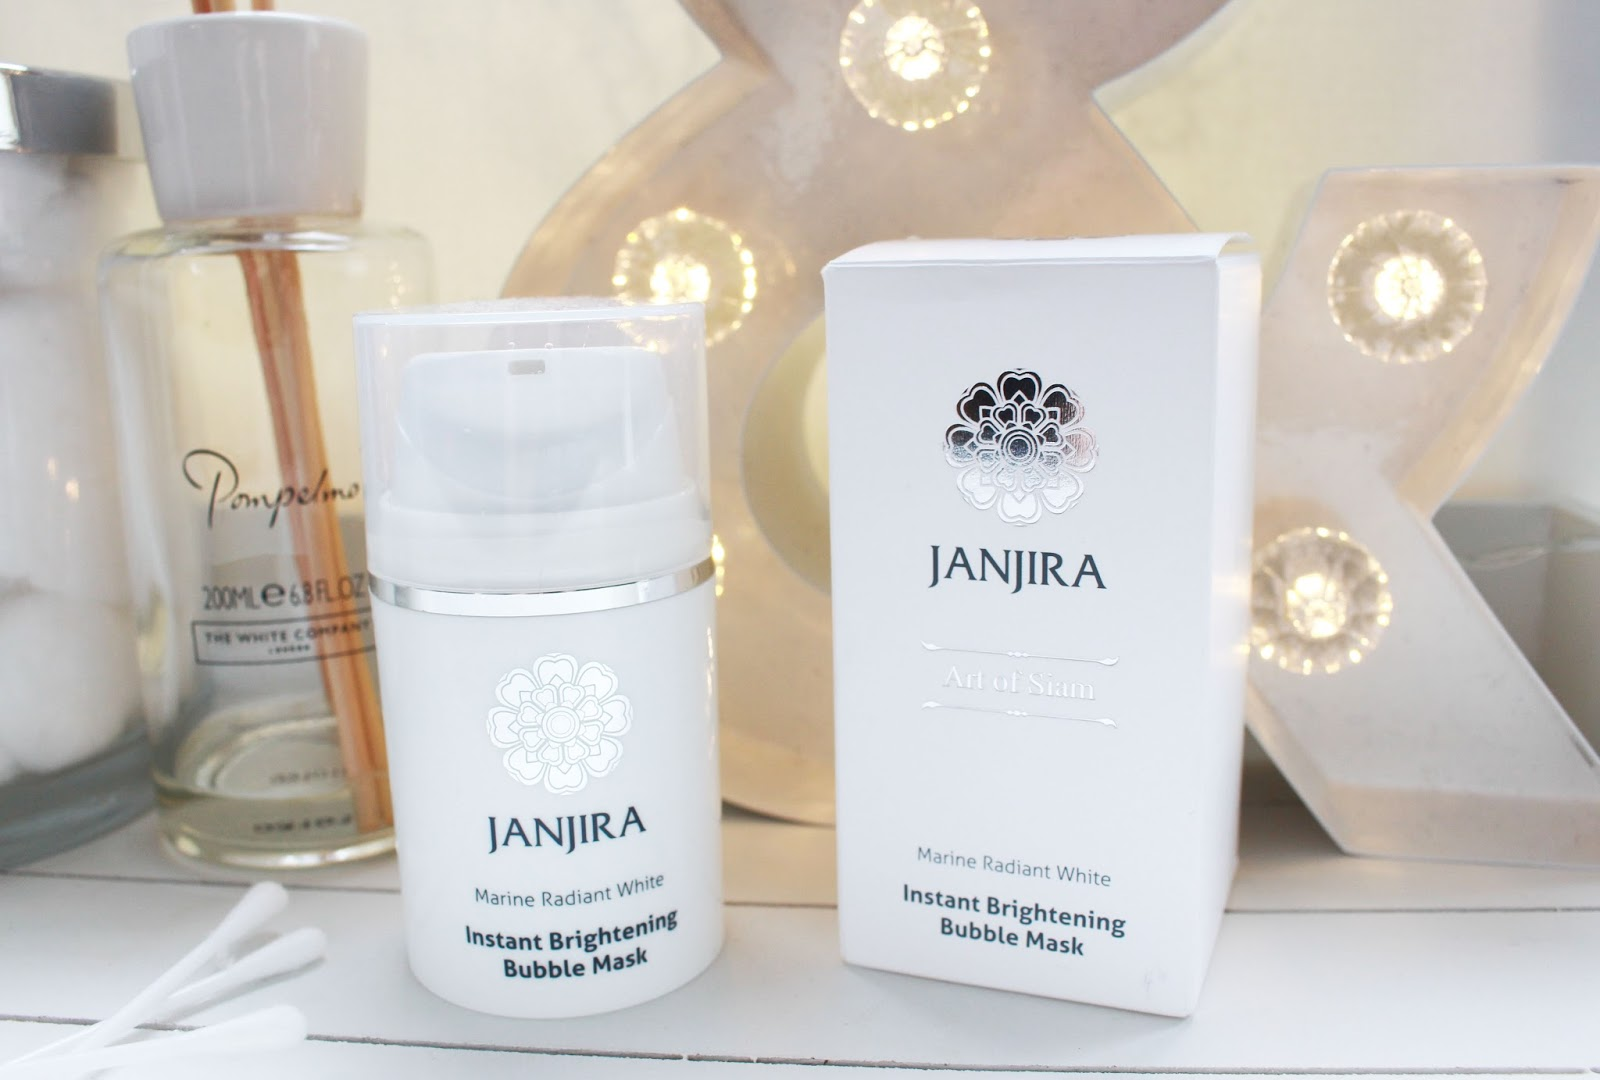 Janjira Instant Brightening Bubble Mask, Face mask review, janjira beauty review,